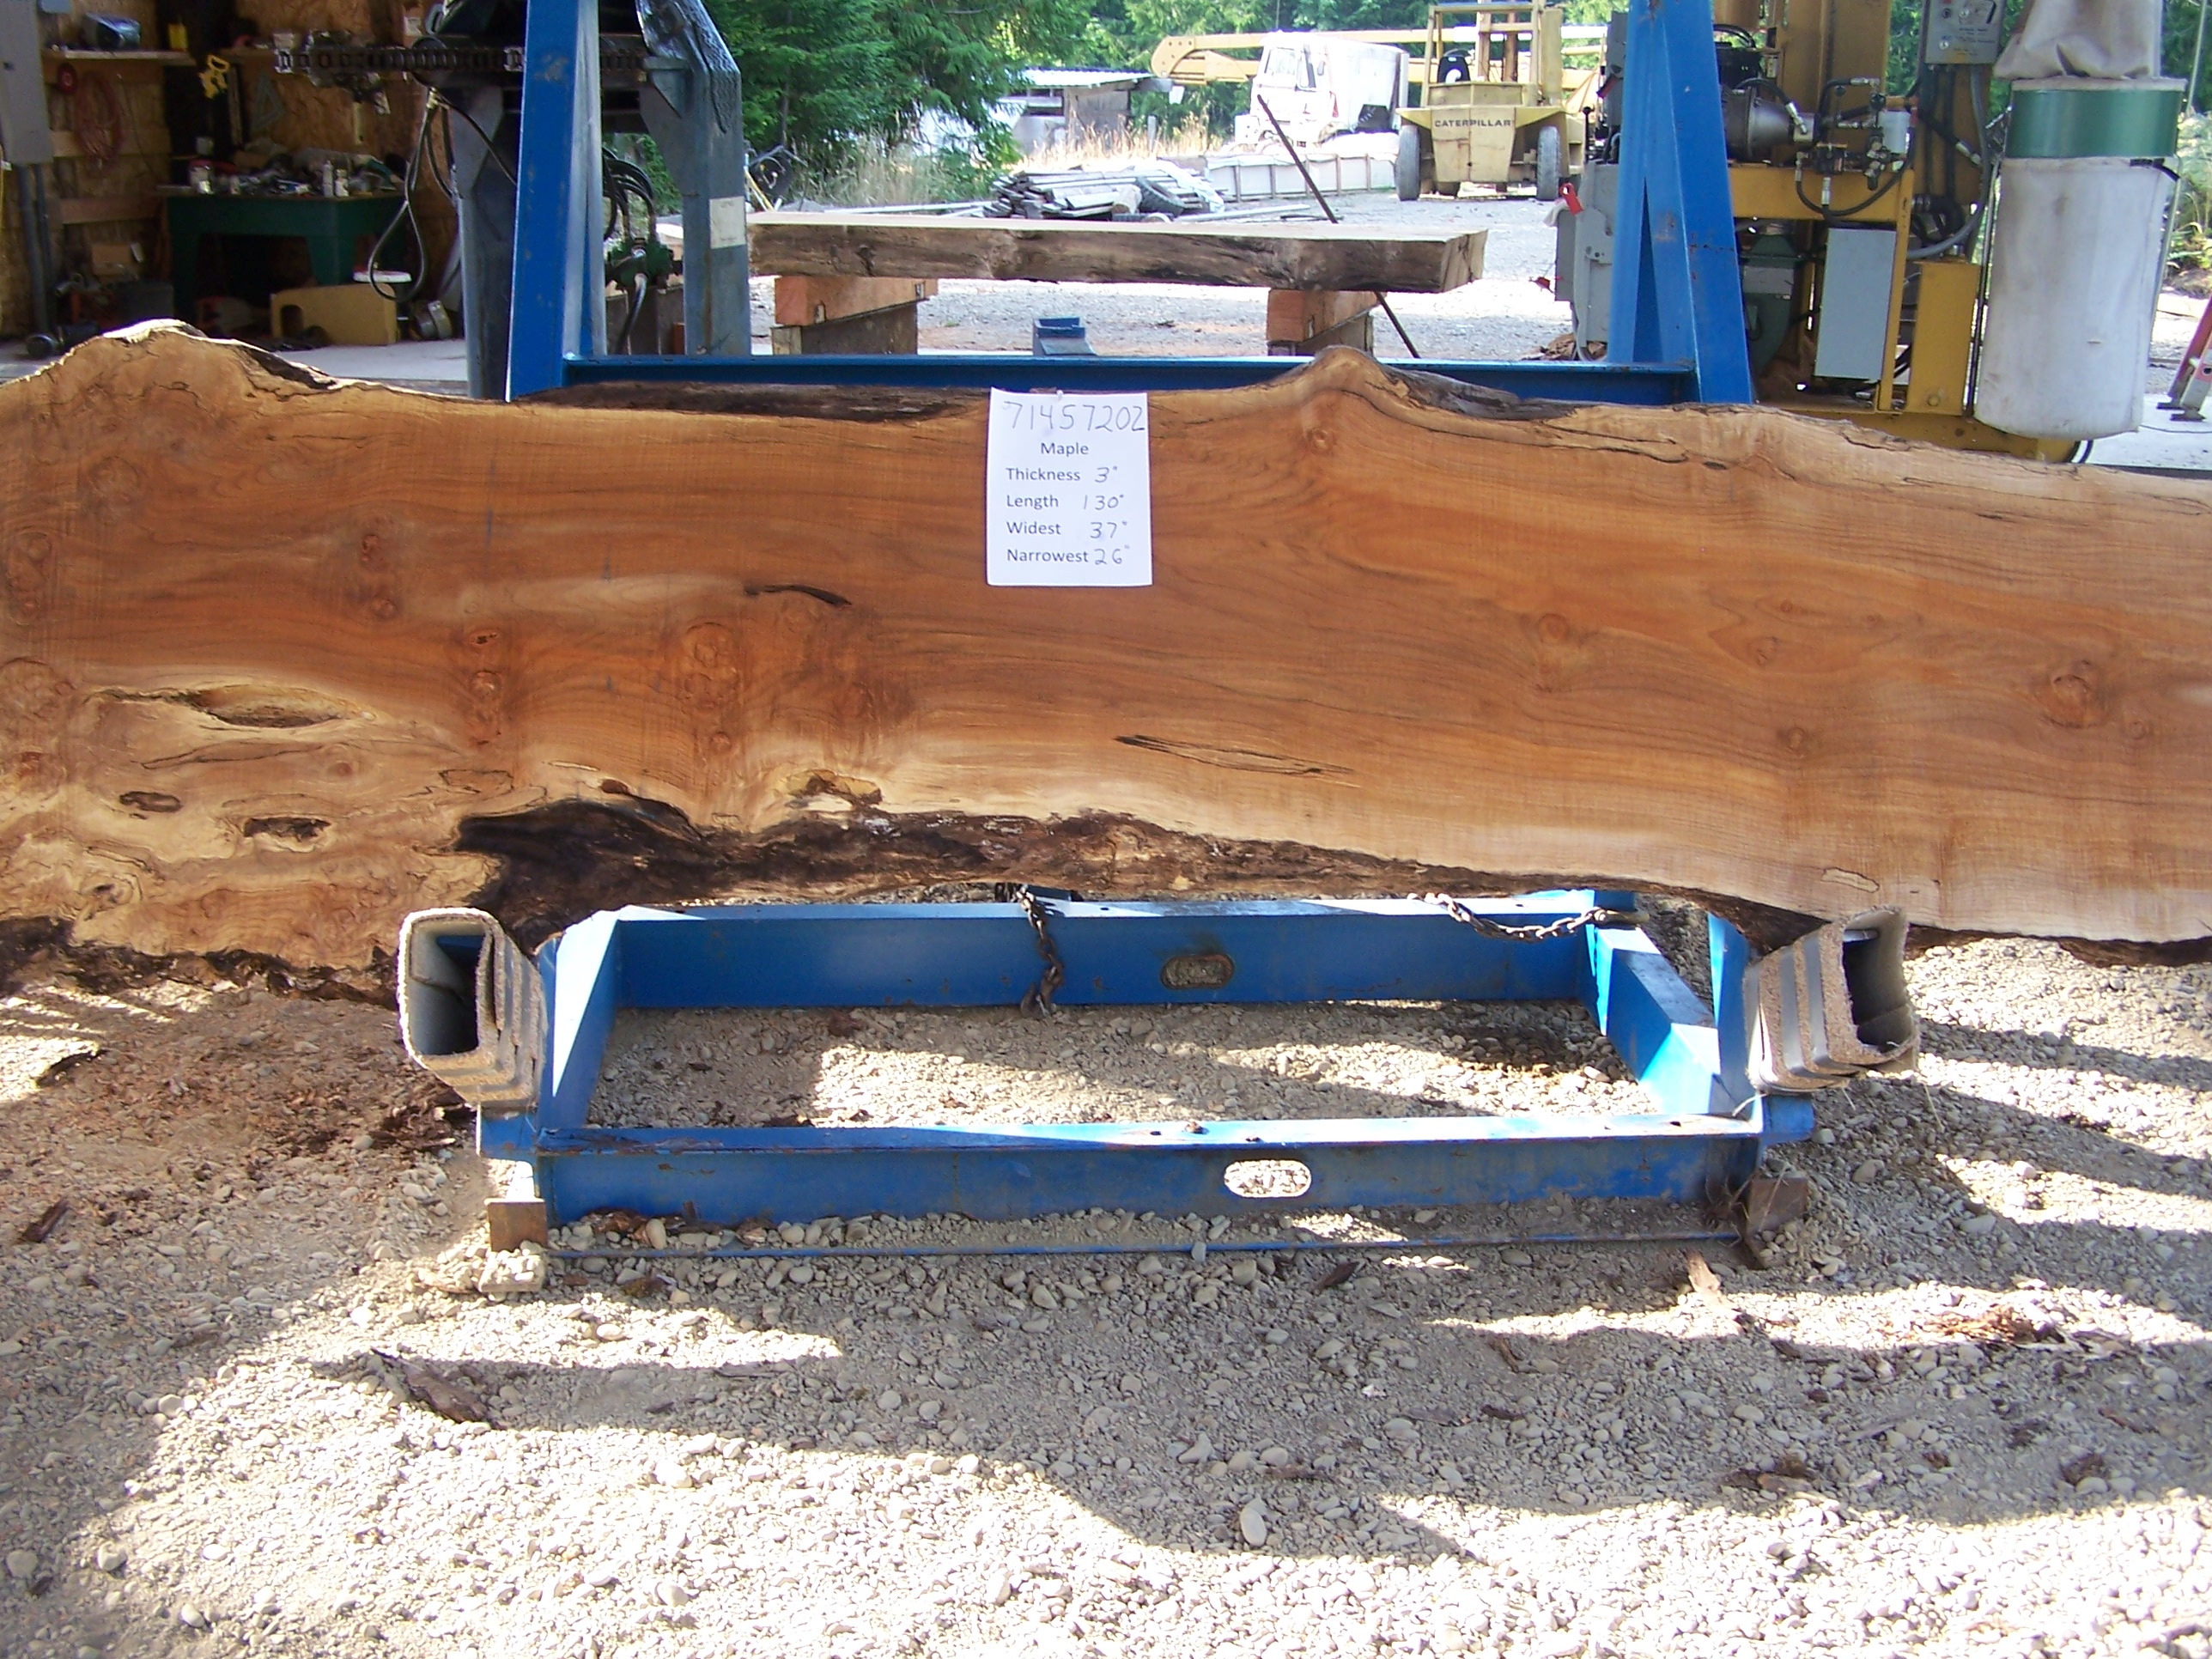 Maple Slab 57202